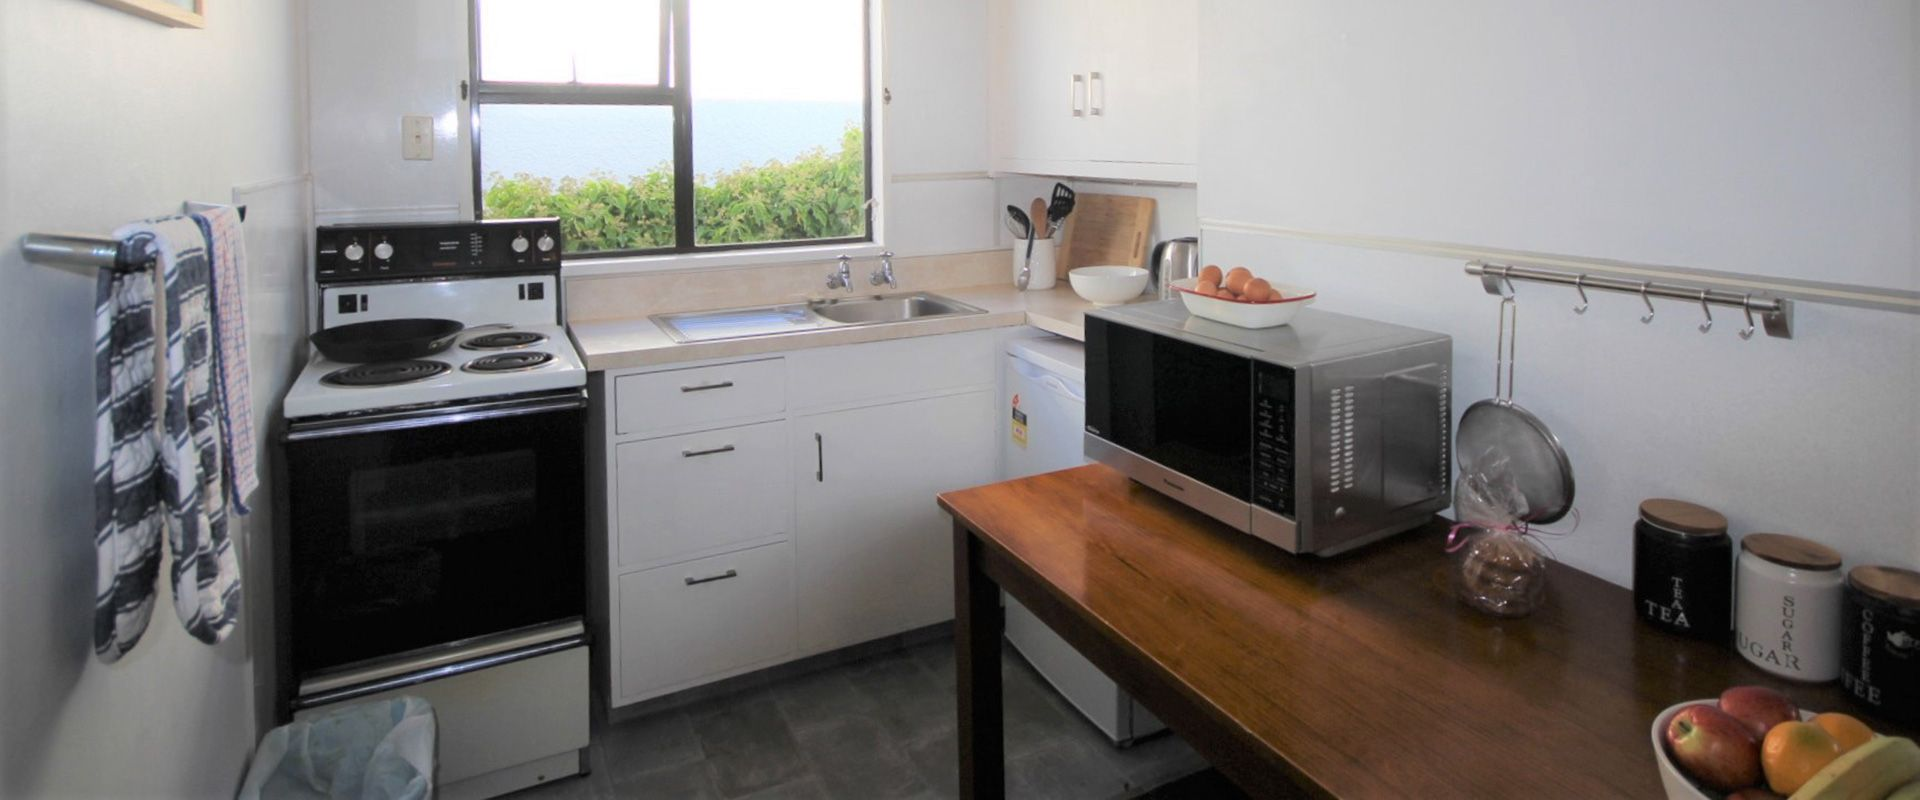 large 2-bedroom unit kitchen facilities